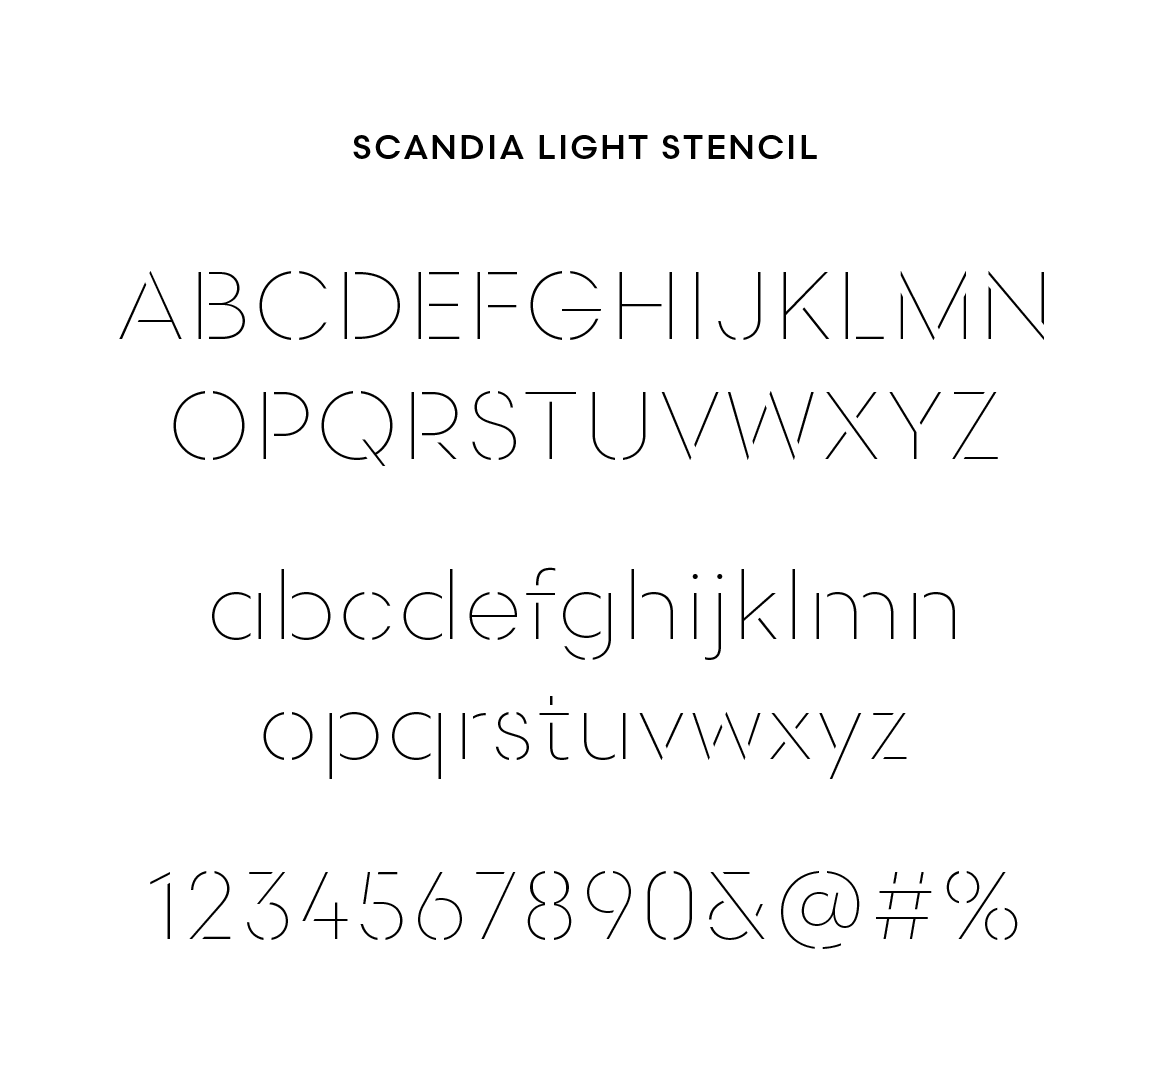 tengbom-scandia-light-sample